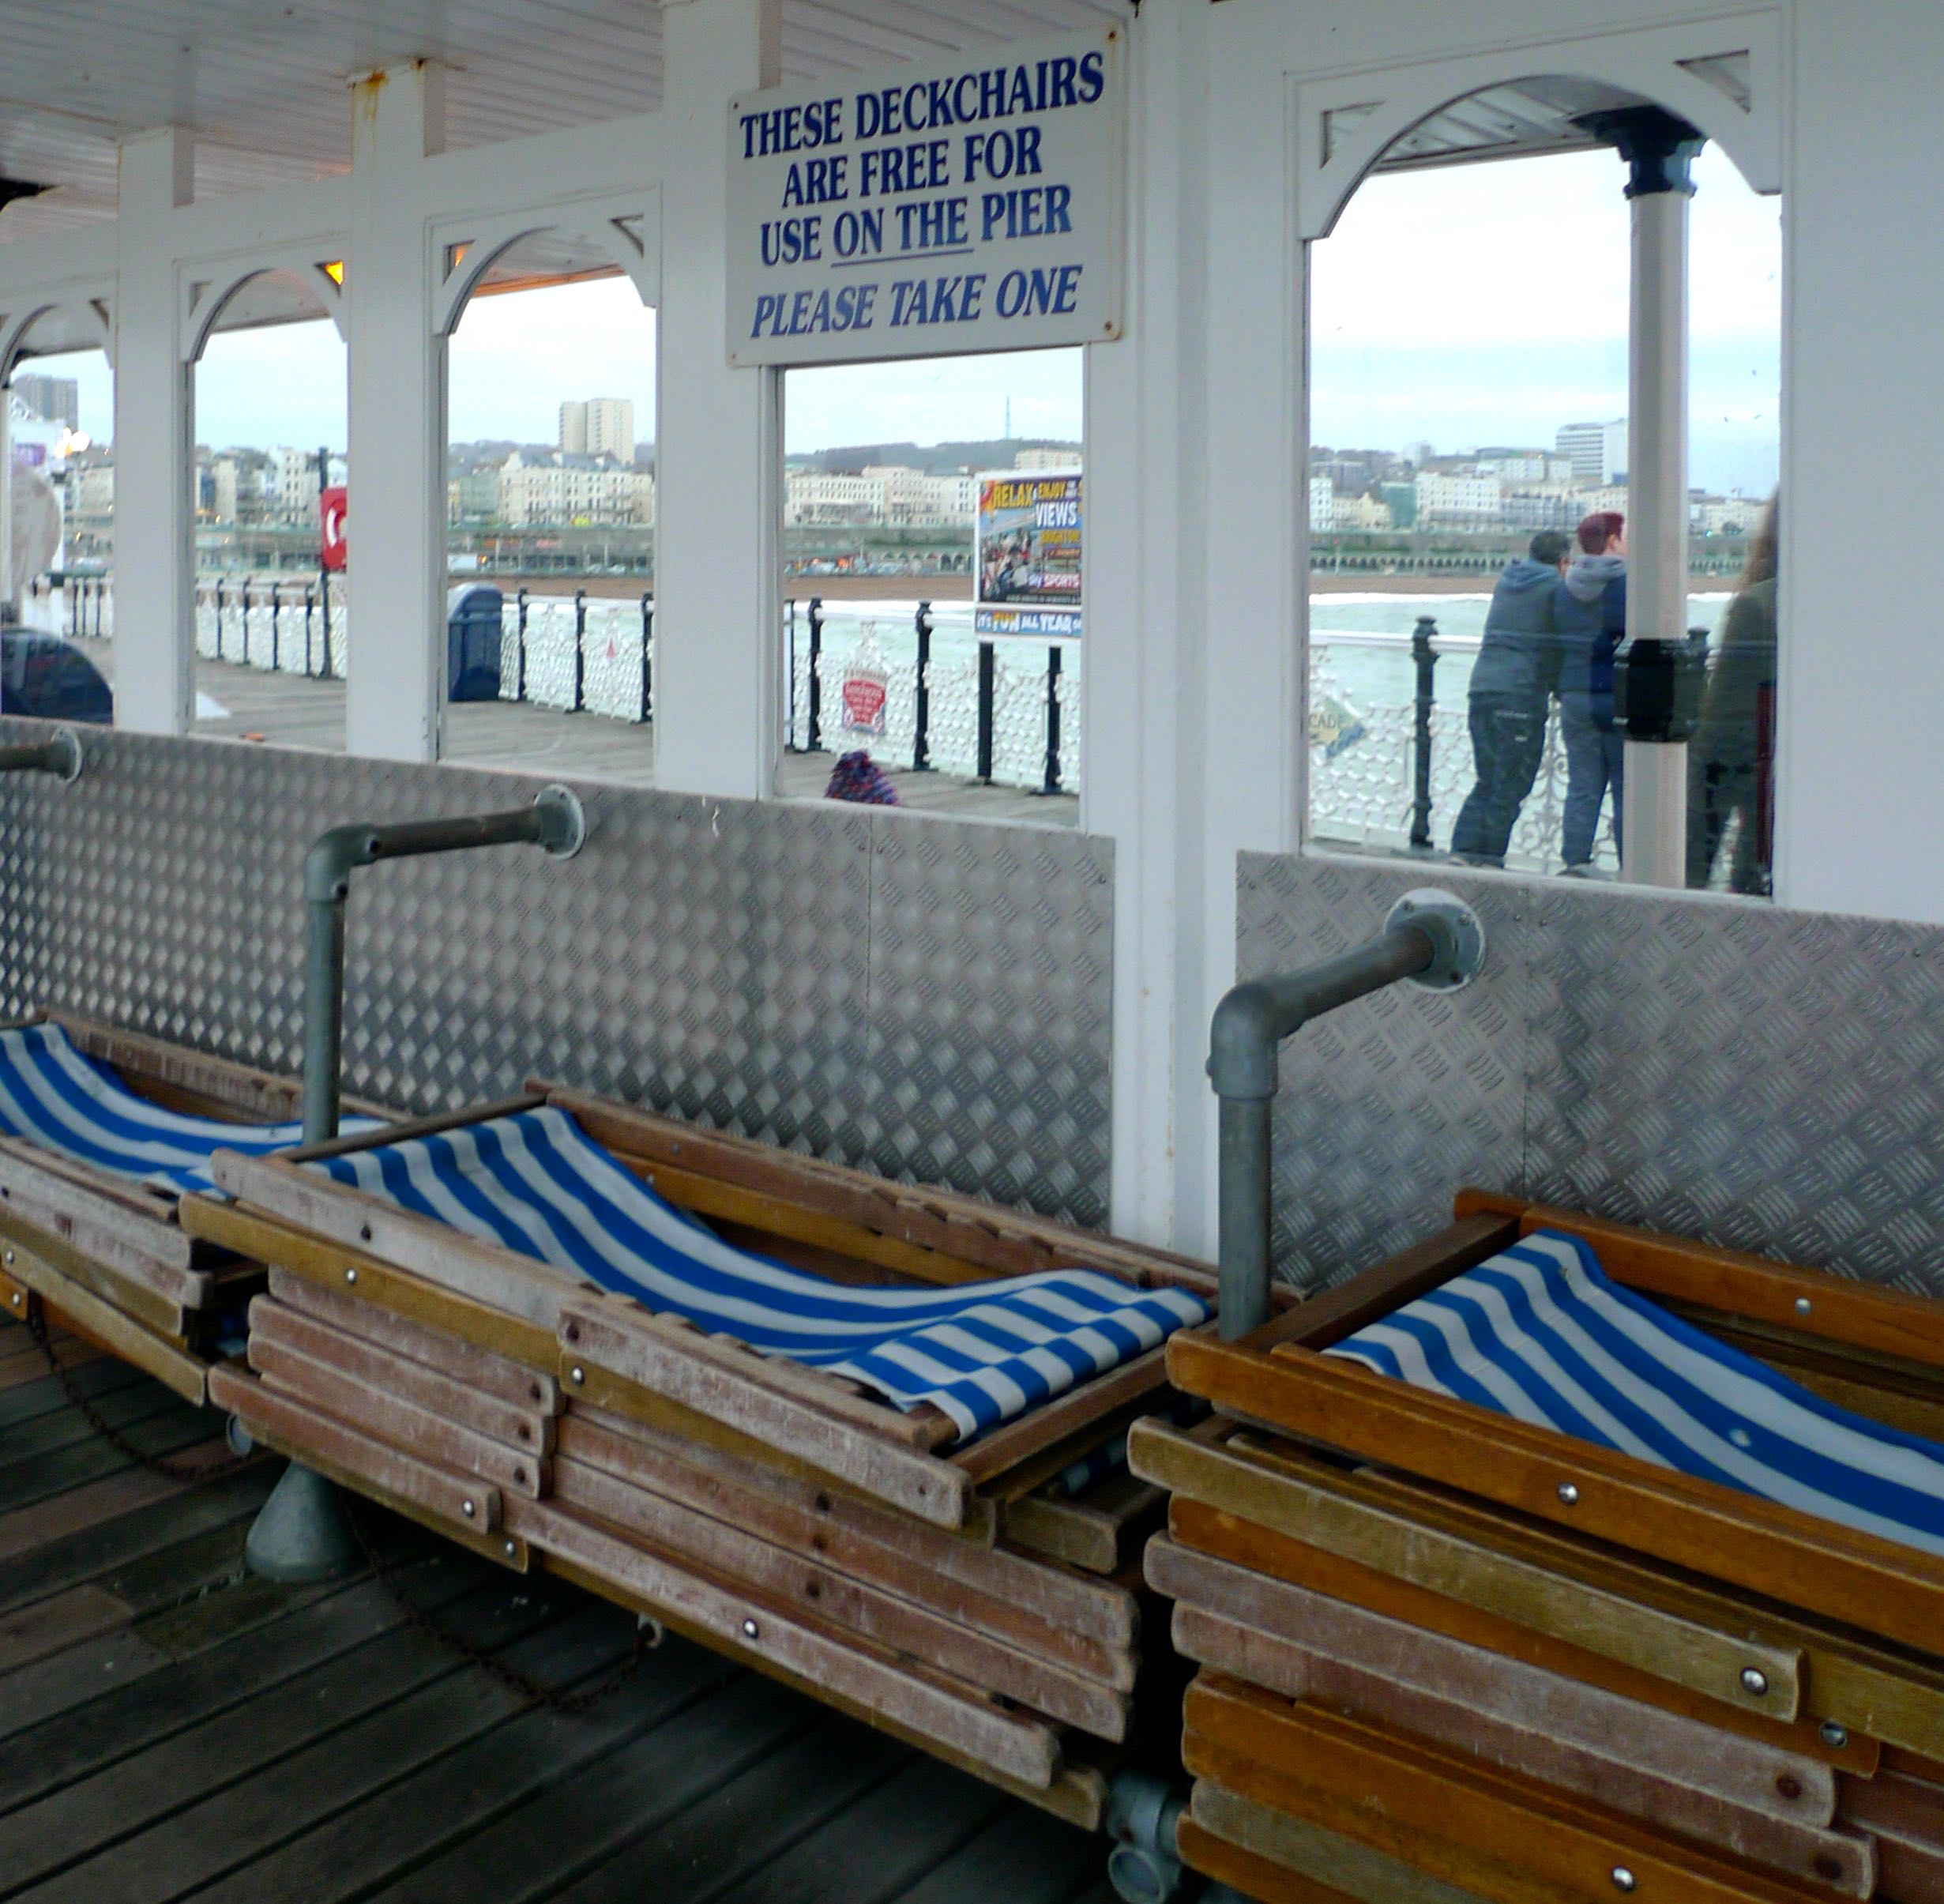 THERE WEREN'T MANY TAKERS FOR DECKCHAIRS EITHER...